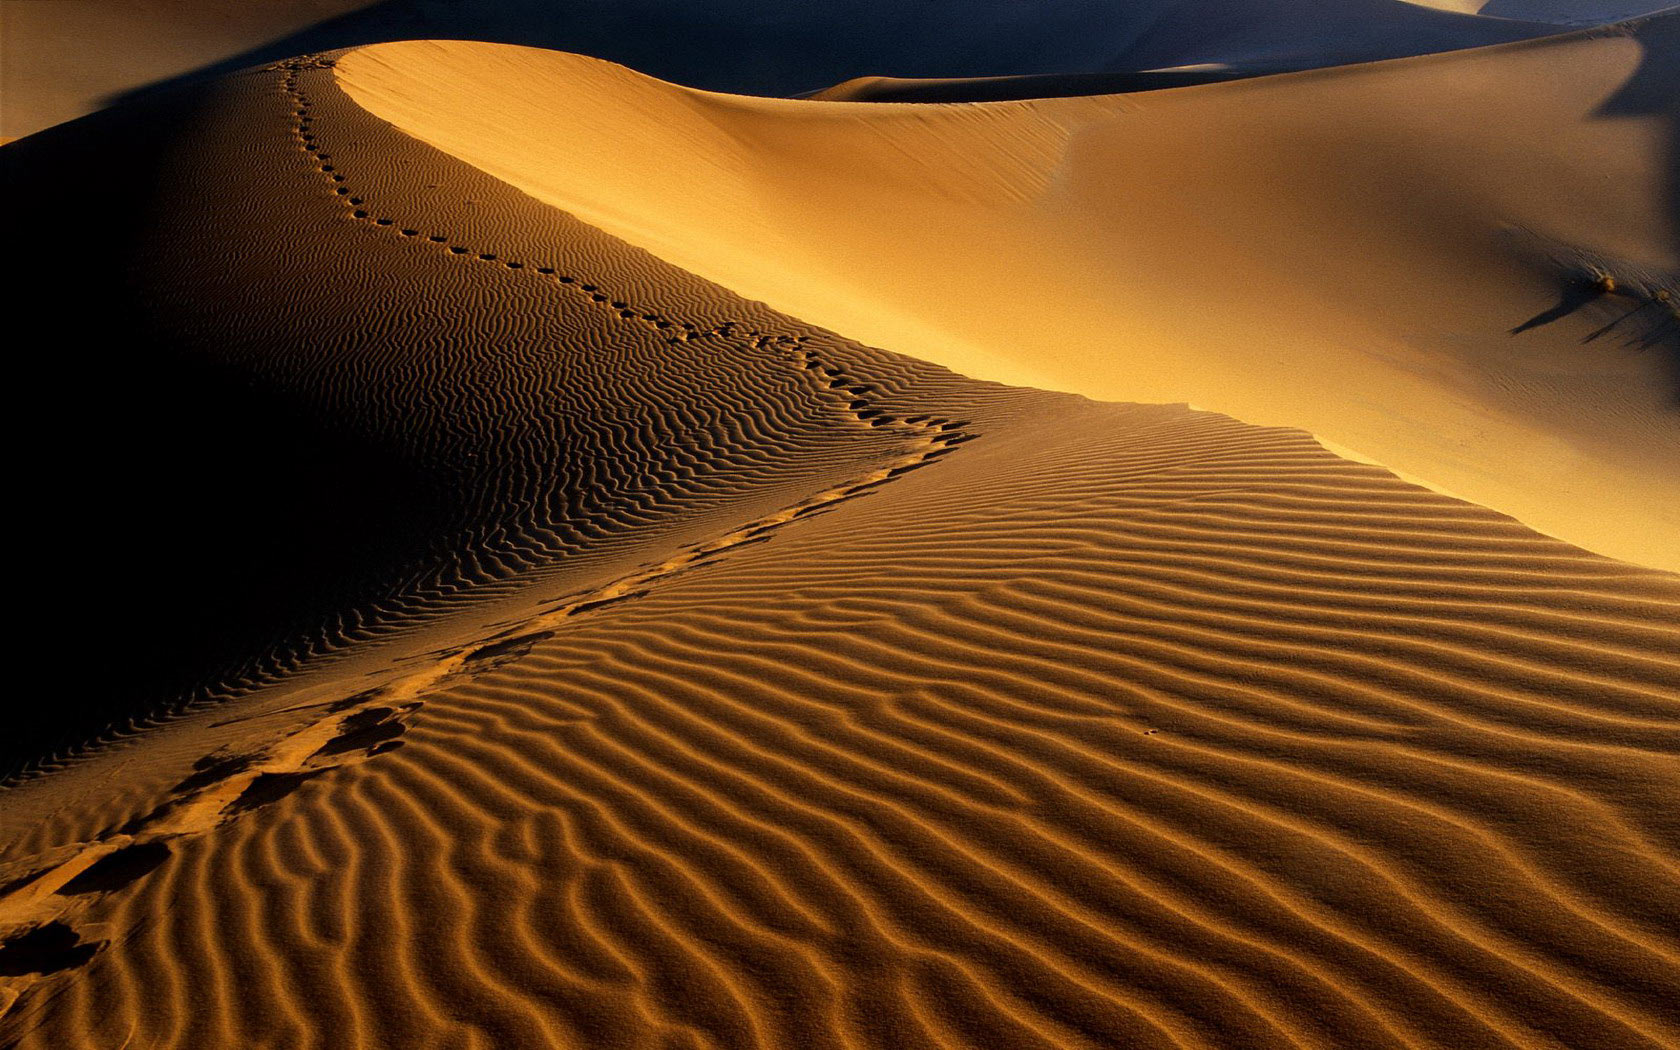 Desktop Backgrounds · Computers · Windows Vista Desert sand vista background